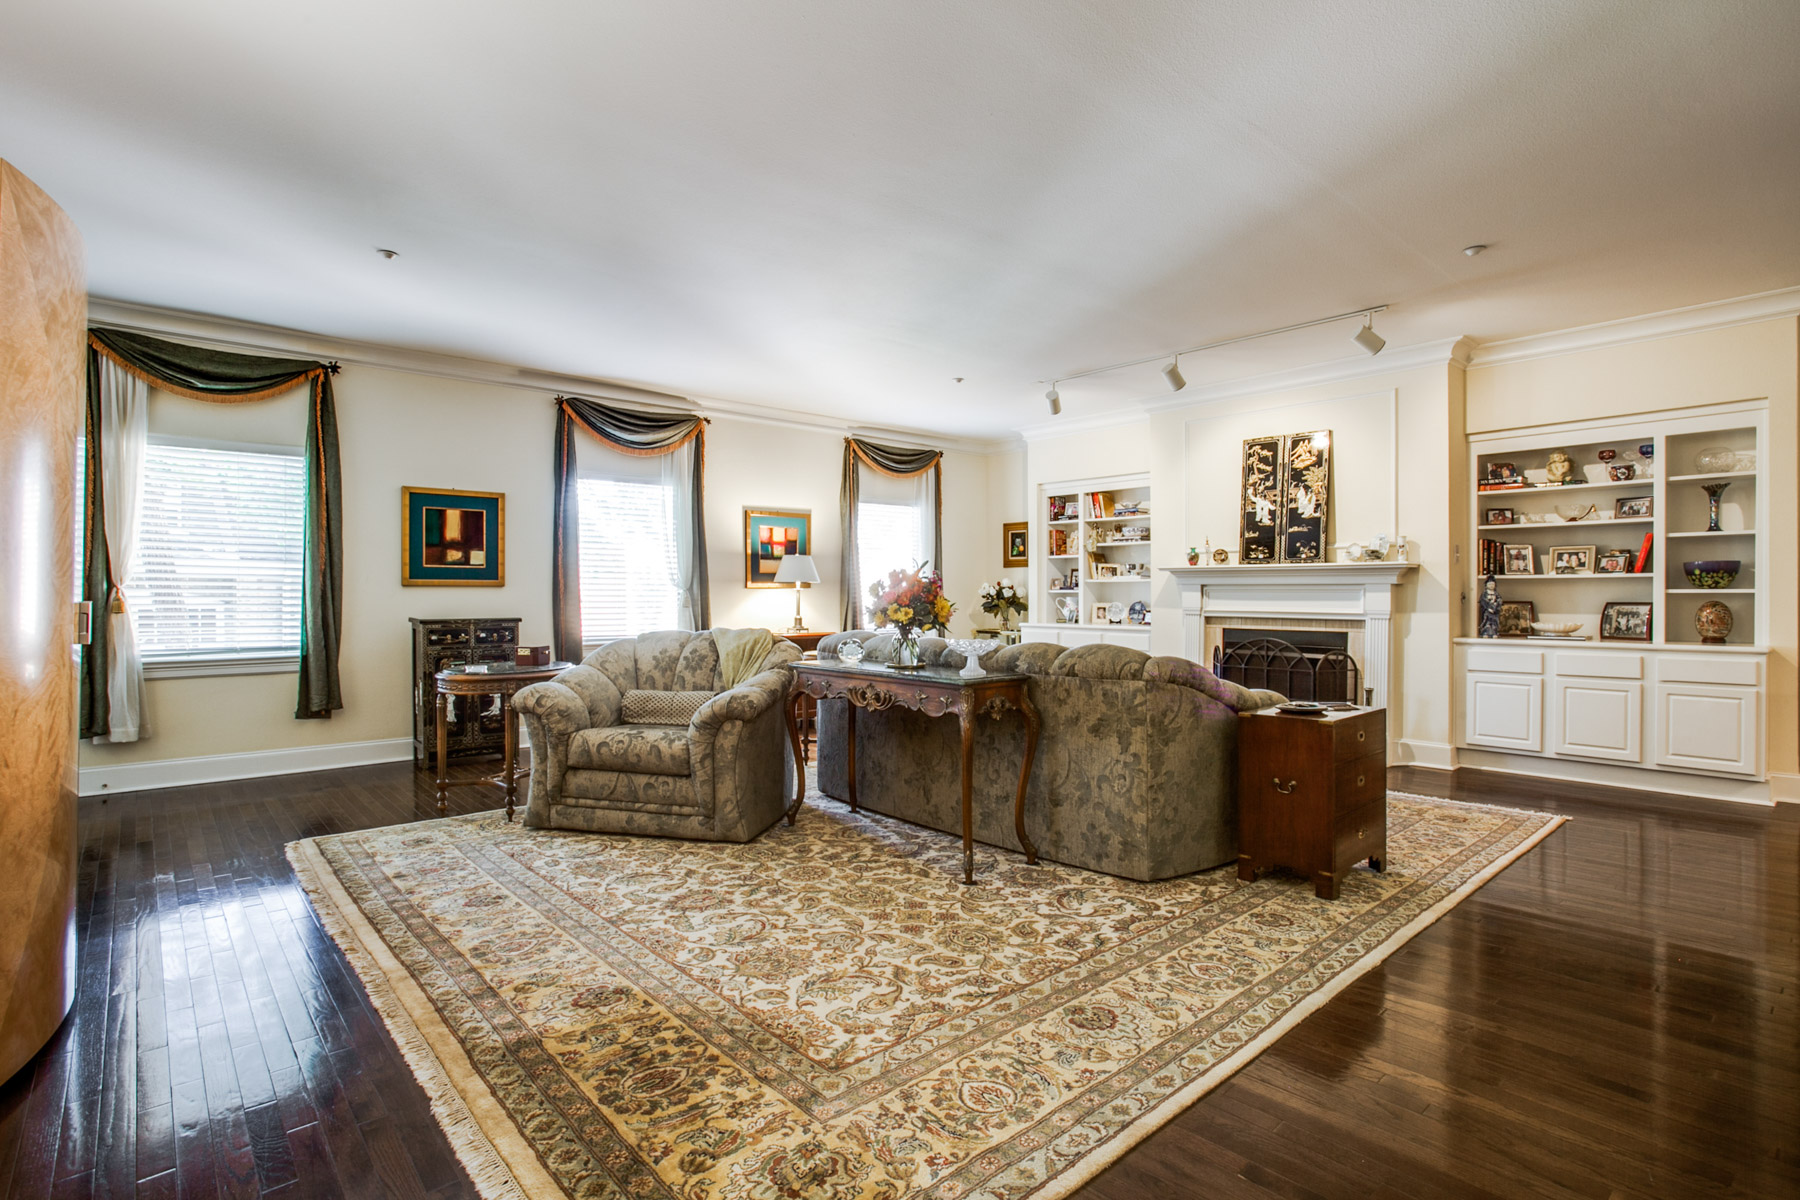 sales property at 4242 Lomo Alto Drive S38, Dallas